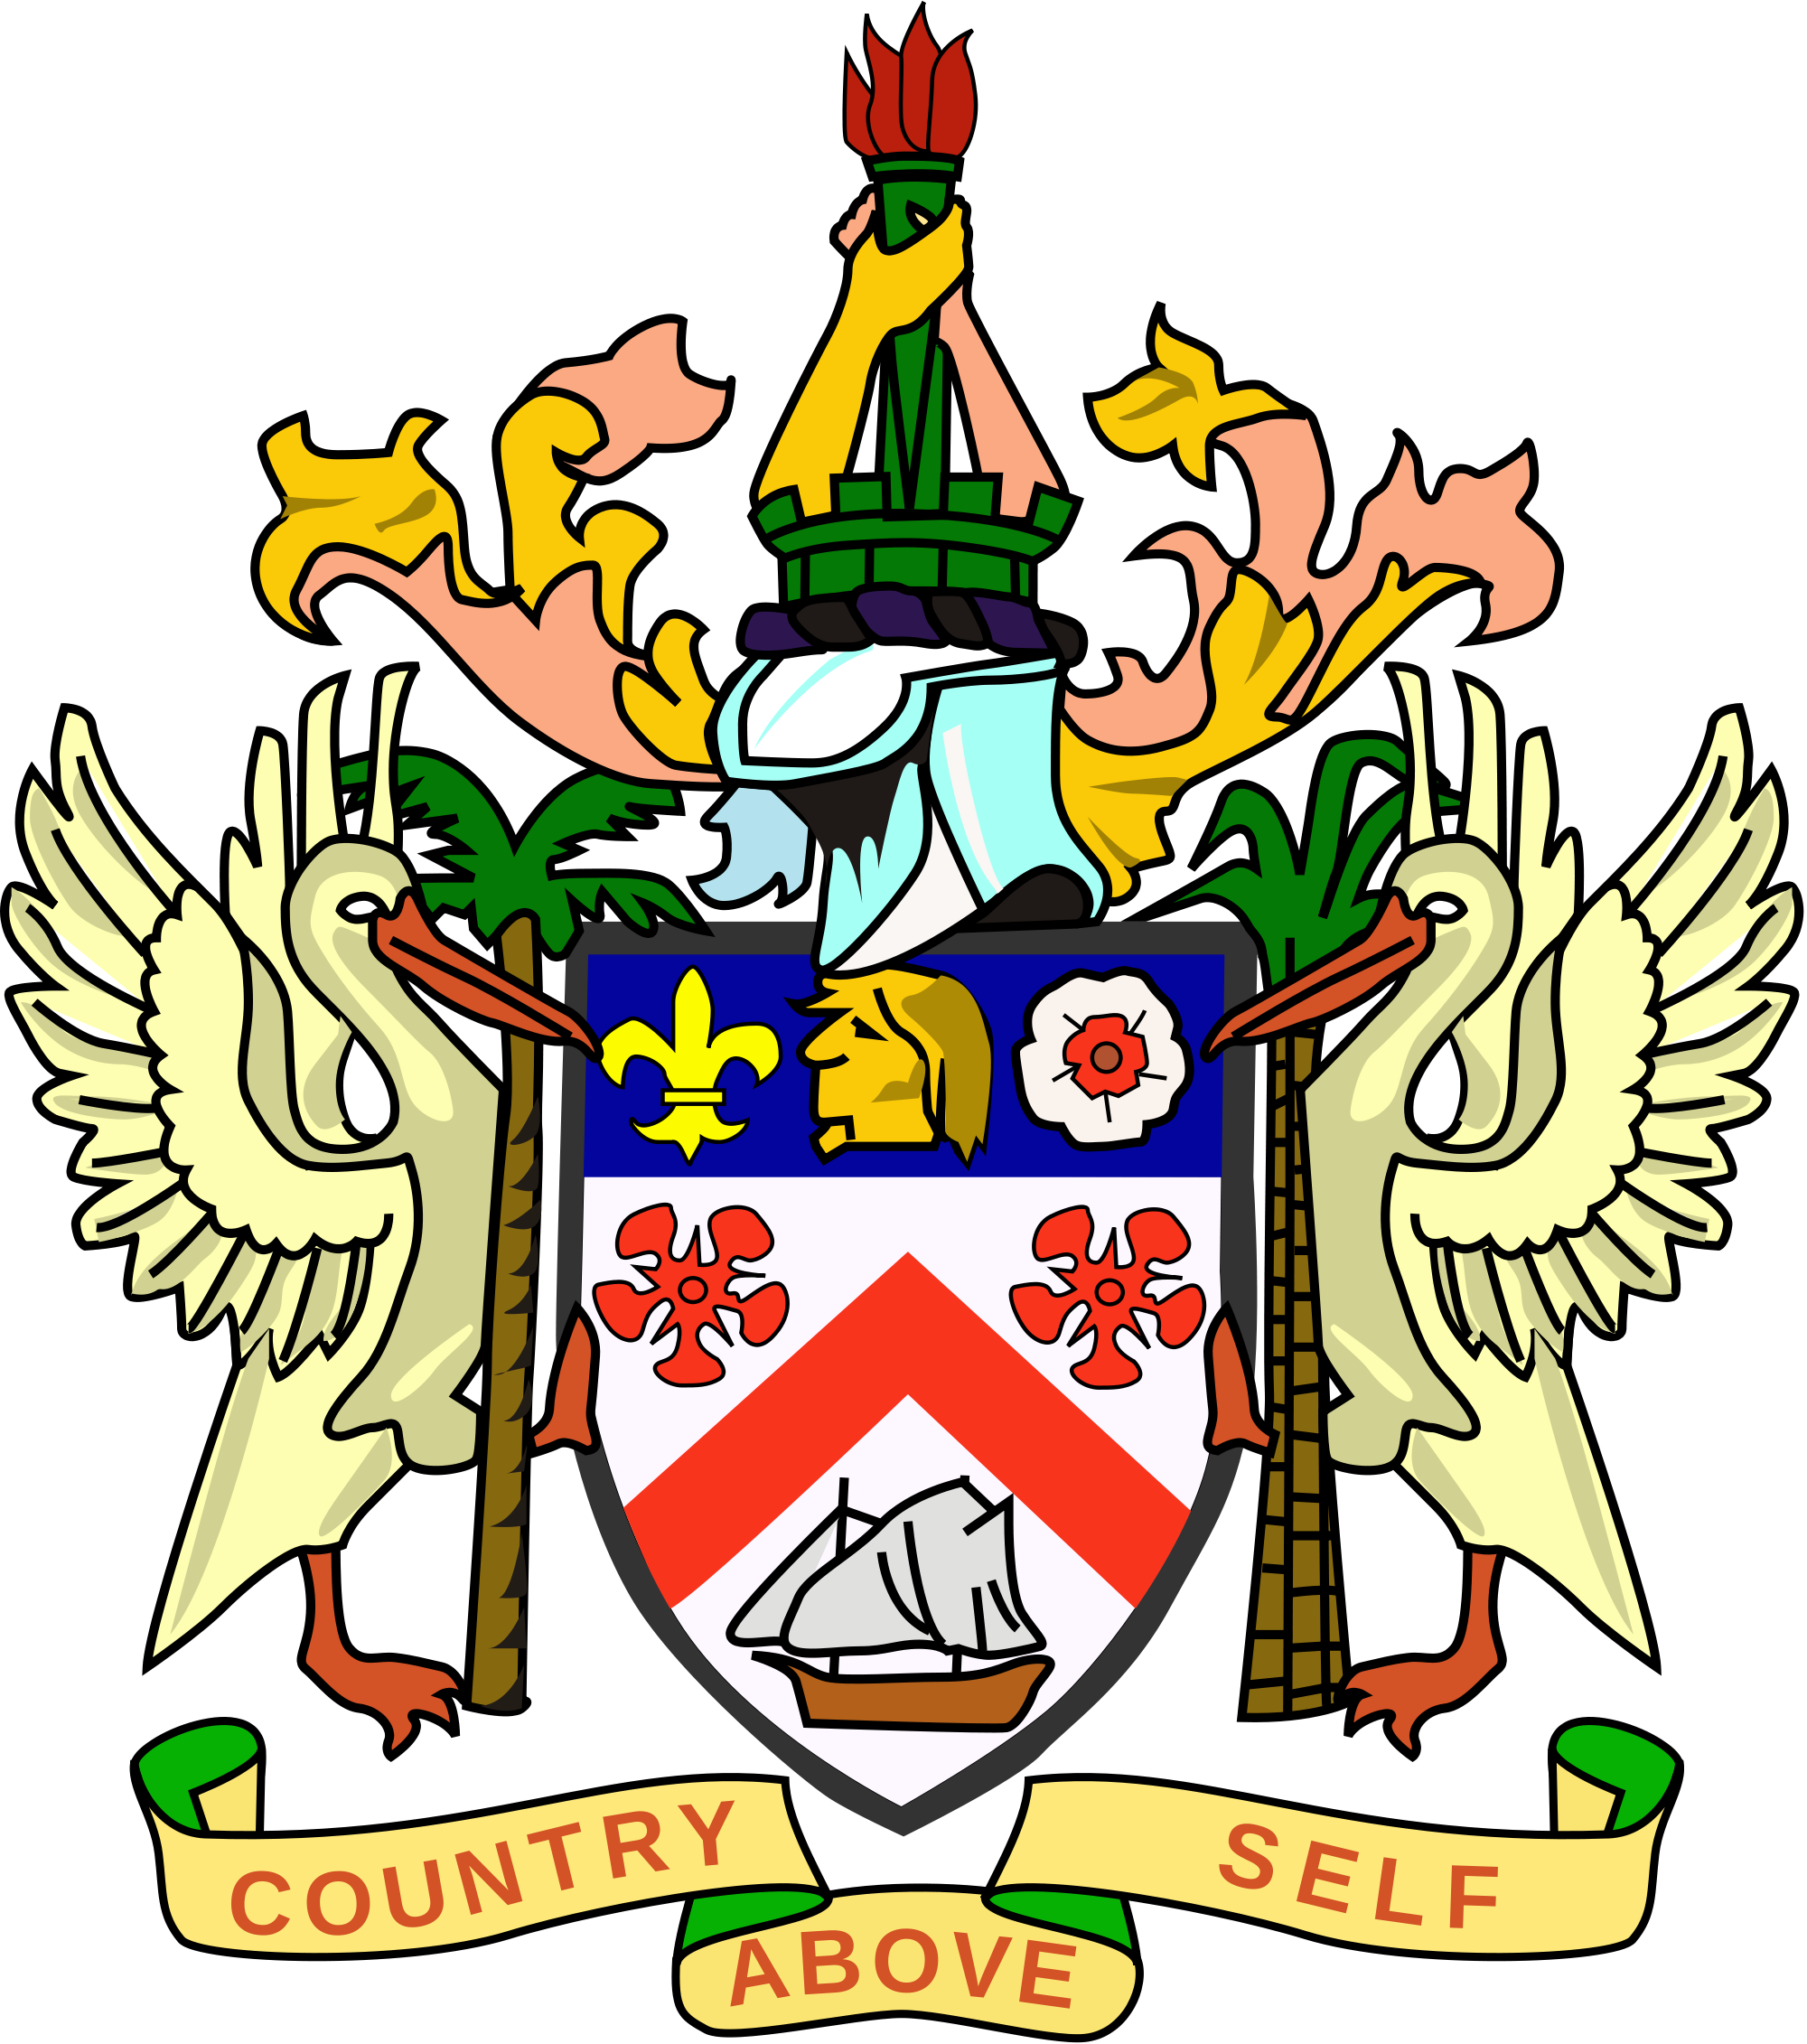 St. Kitts-Nevis coat of arms